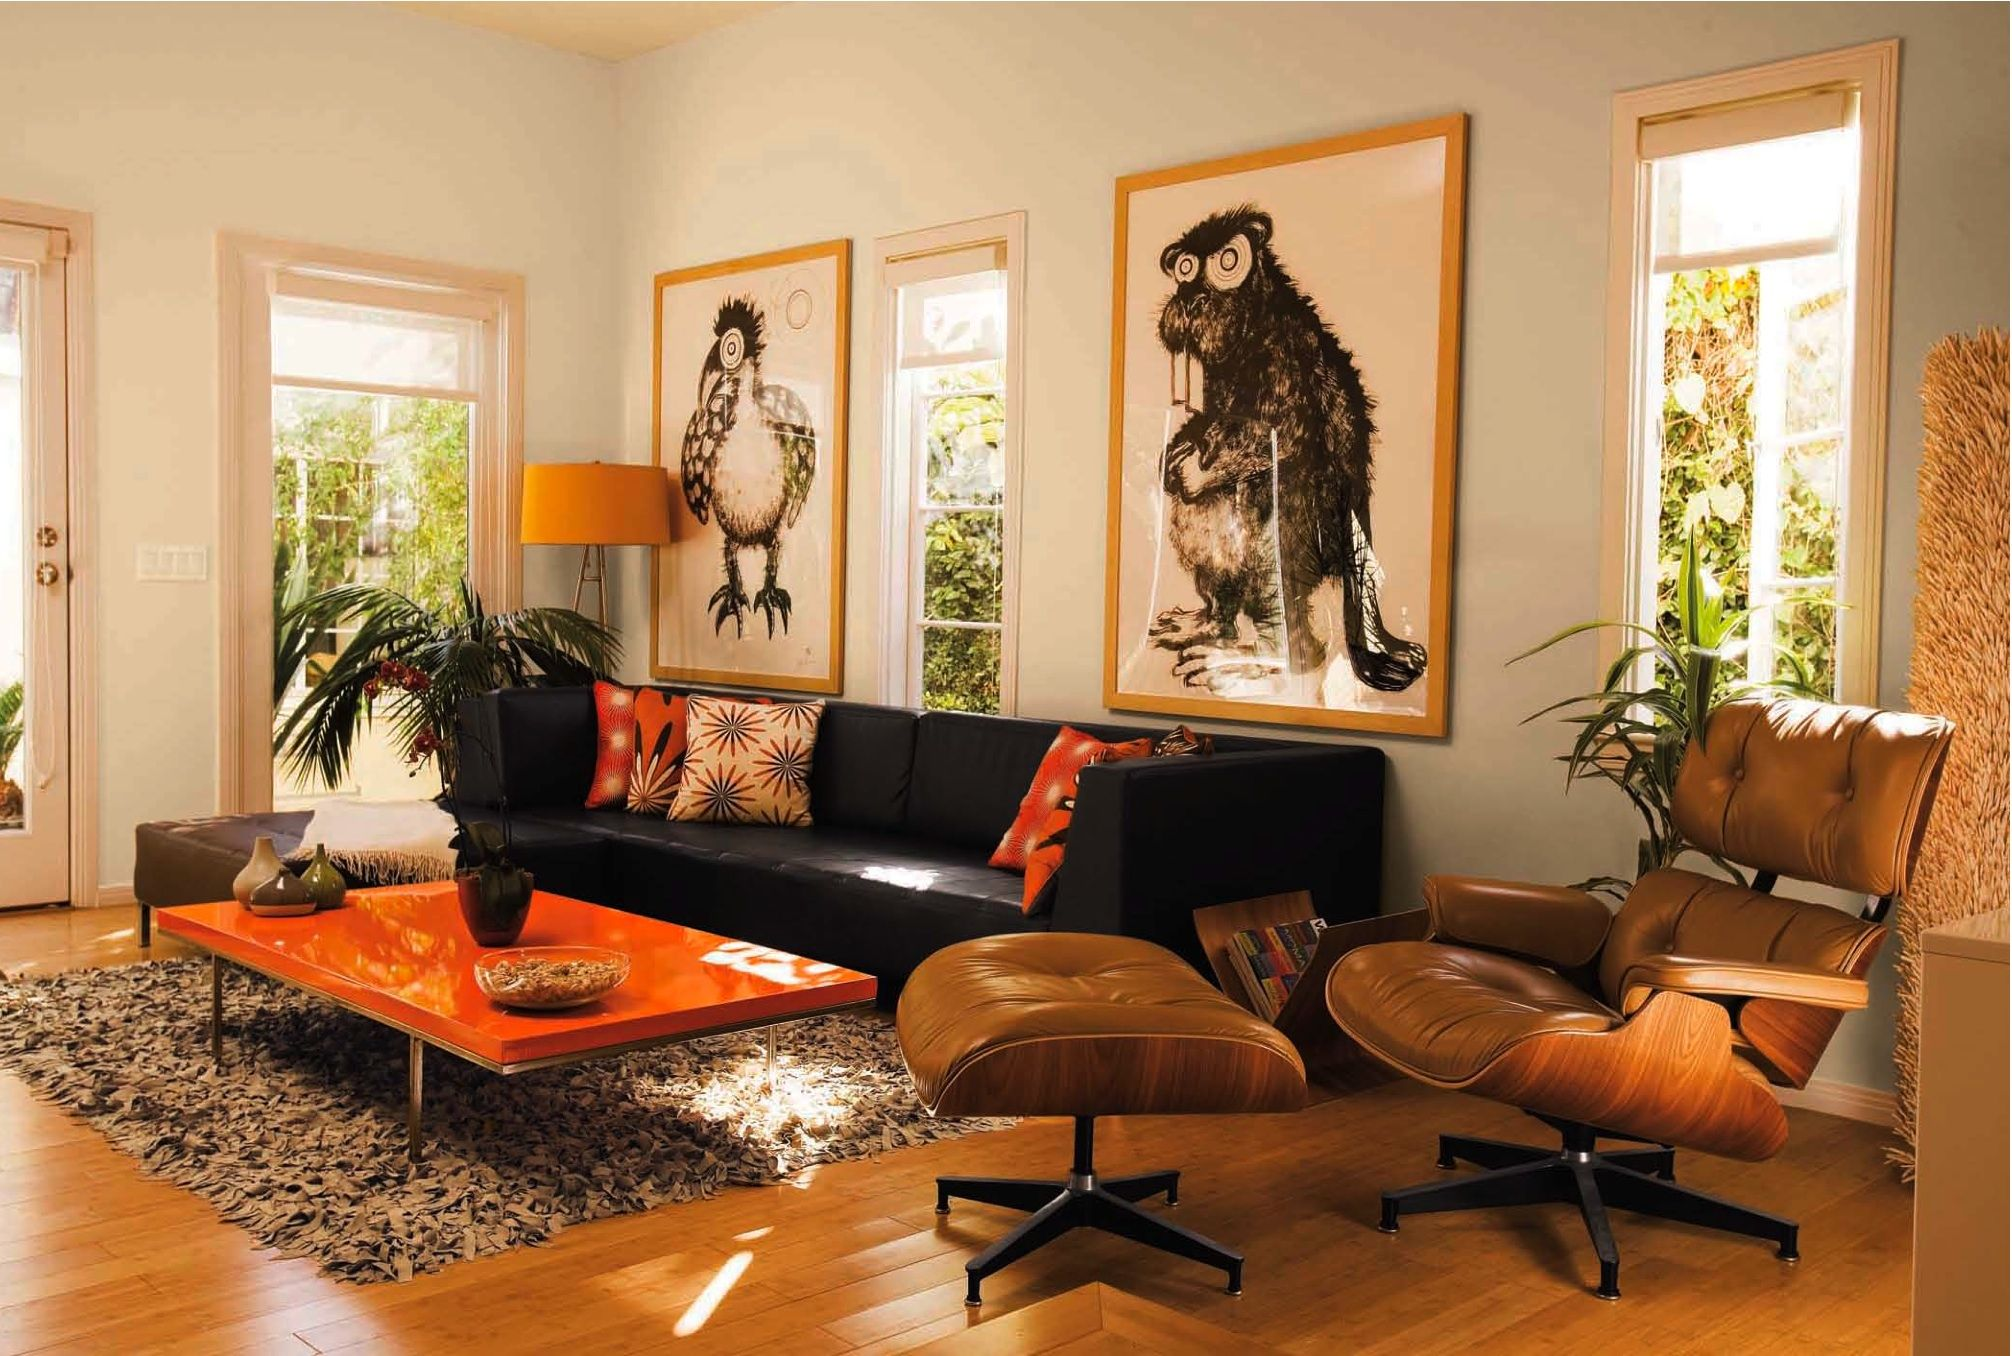 Traditional living room with orange table with black sofa for Small traditional living room ideas